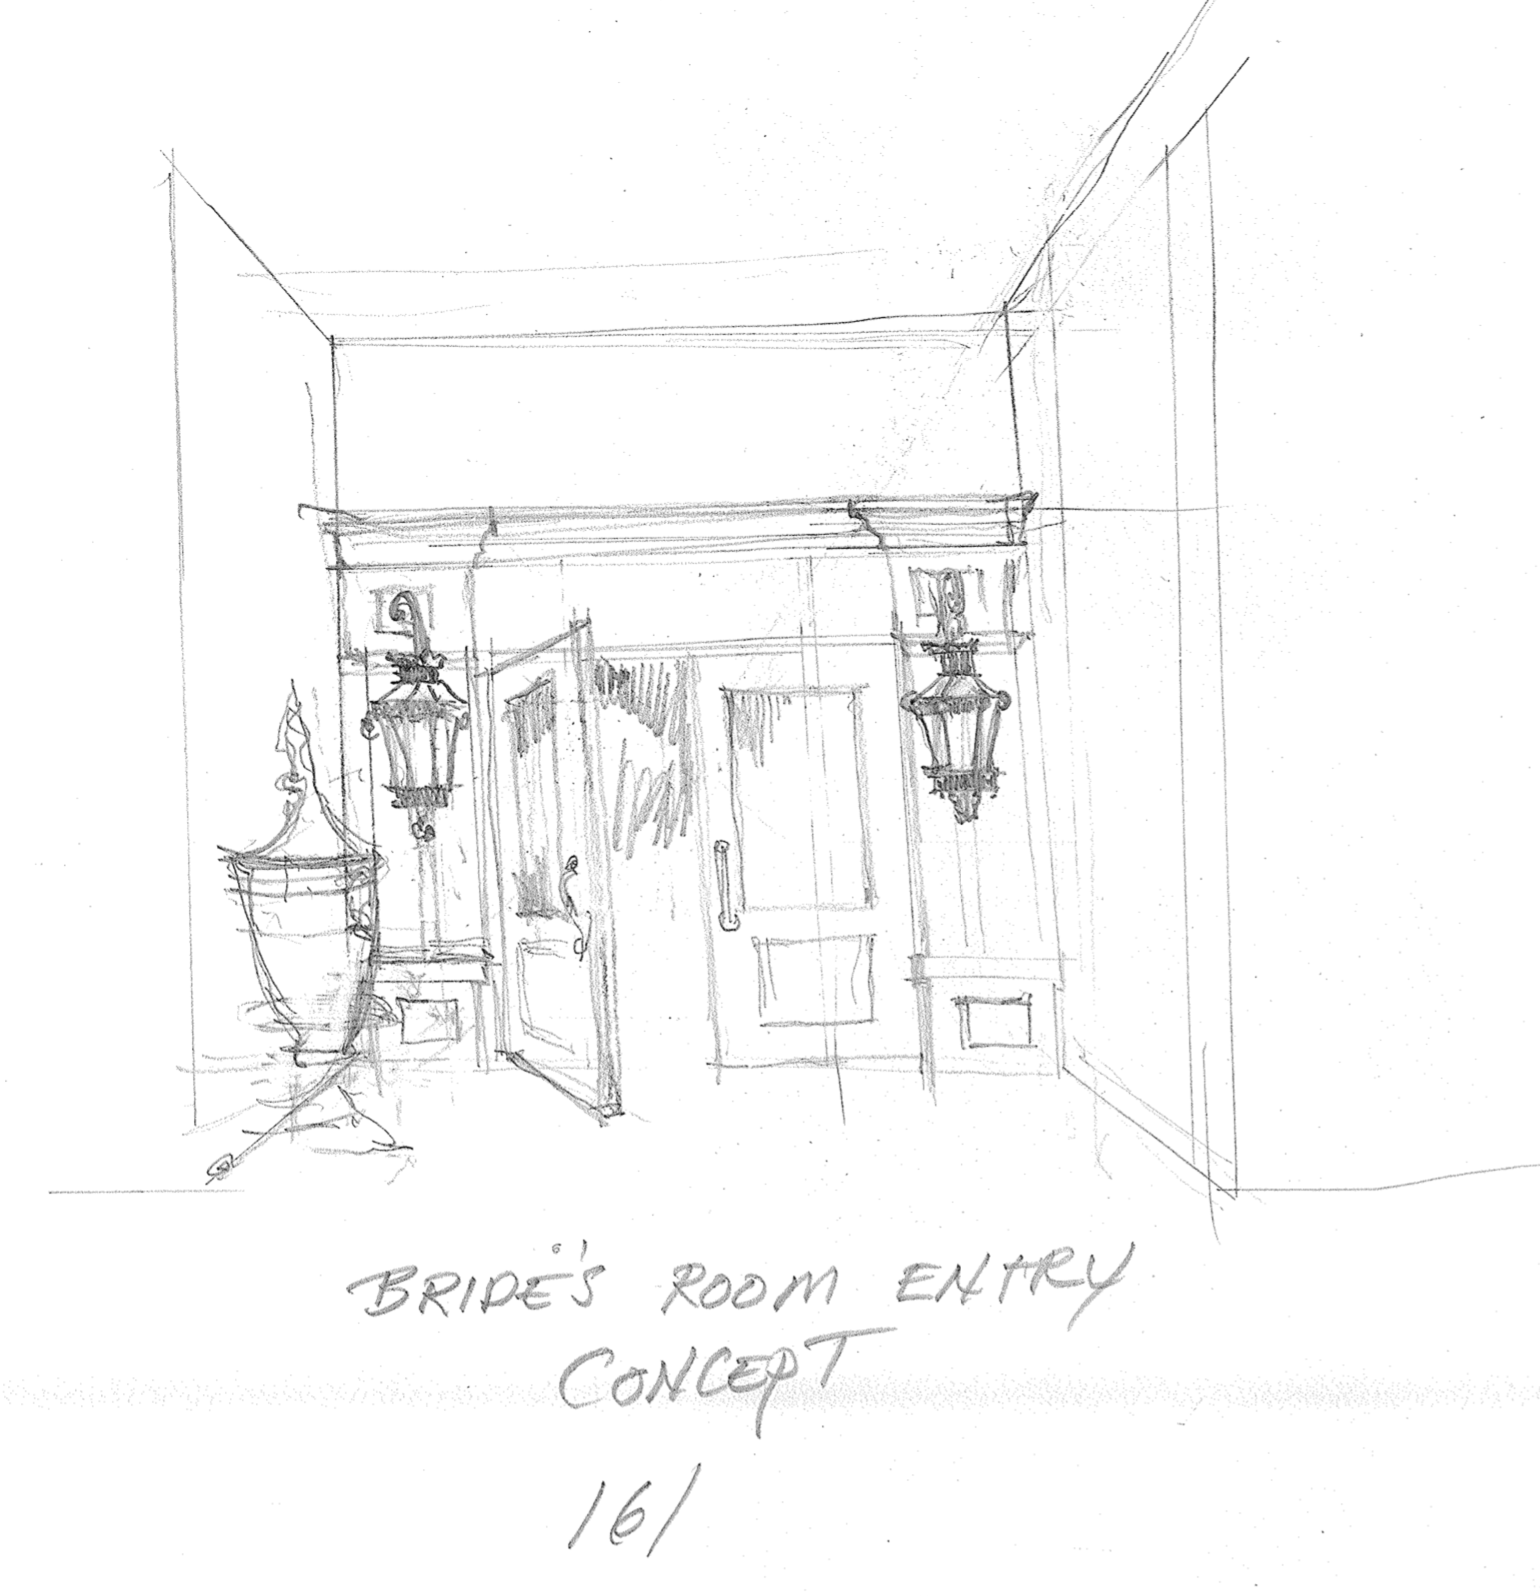 Brides room-entry-interior.png